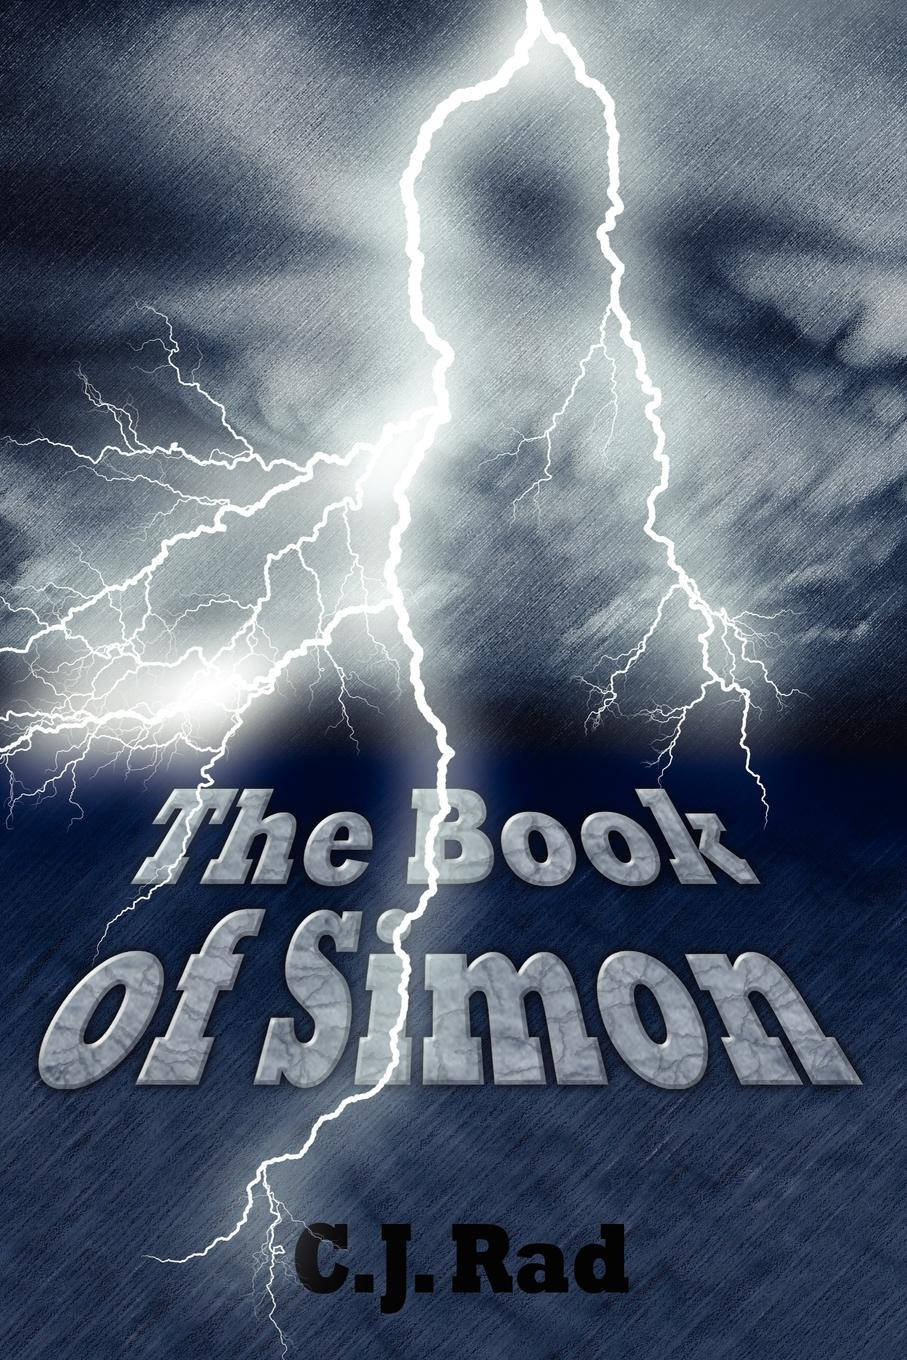 Charles J. Rad The Book of Simon just like other daughters